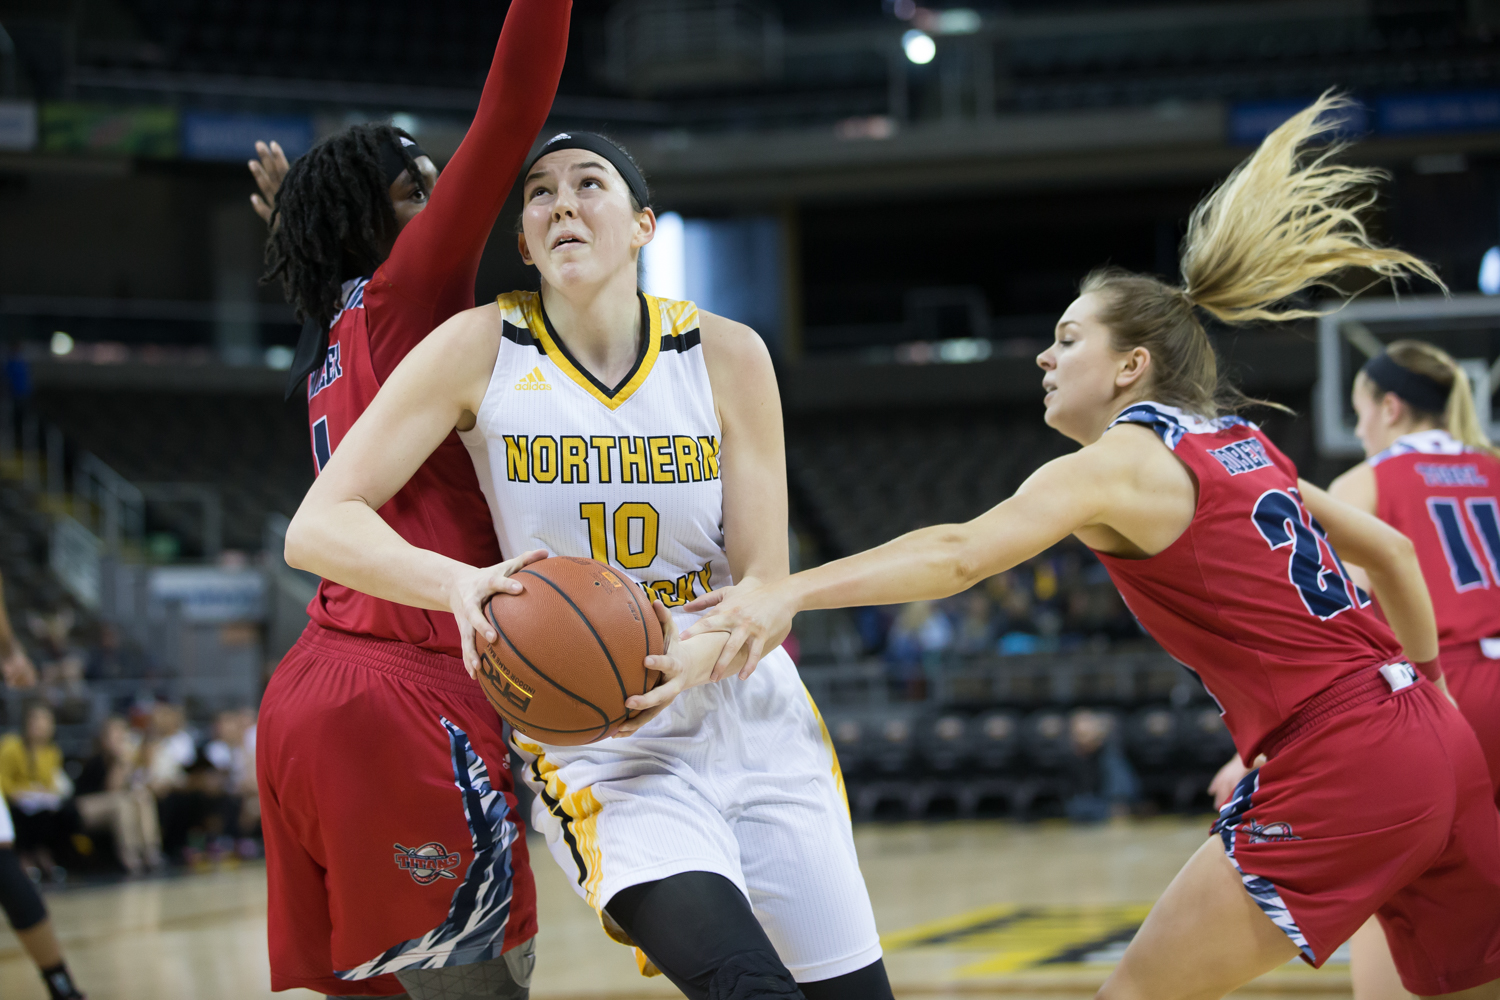 Grayson Rose (10) looks to shoot in the game against Detroit Mercy.